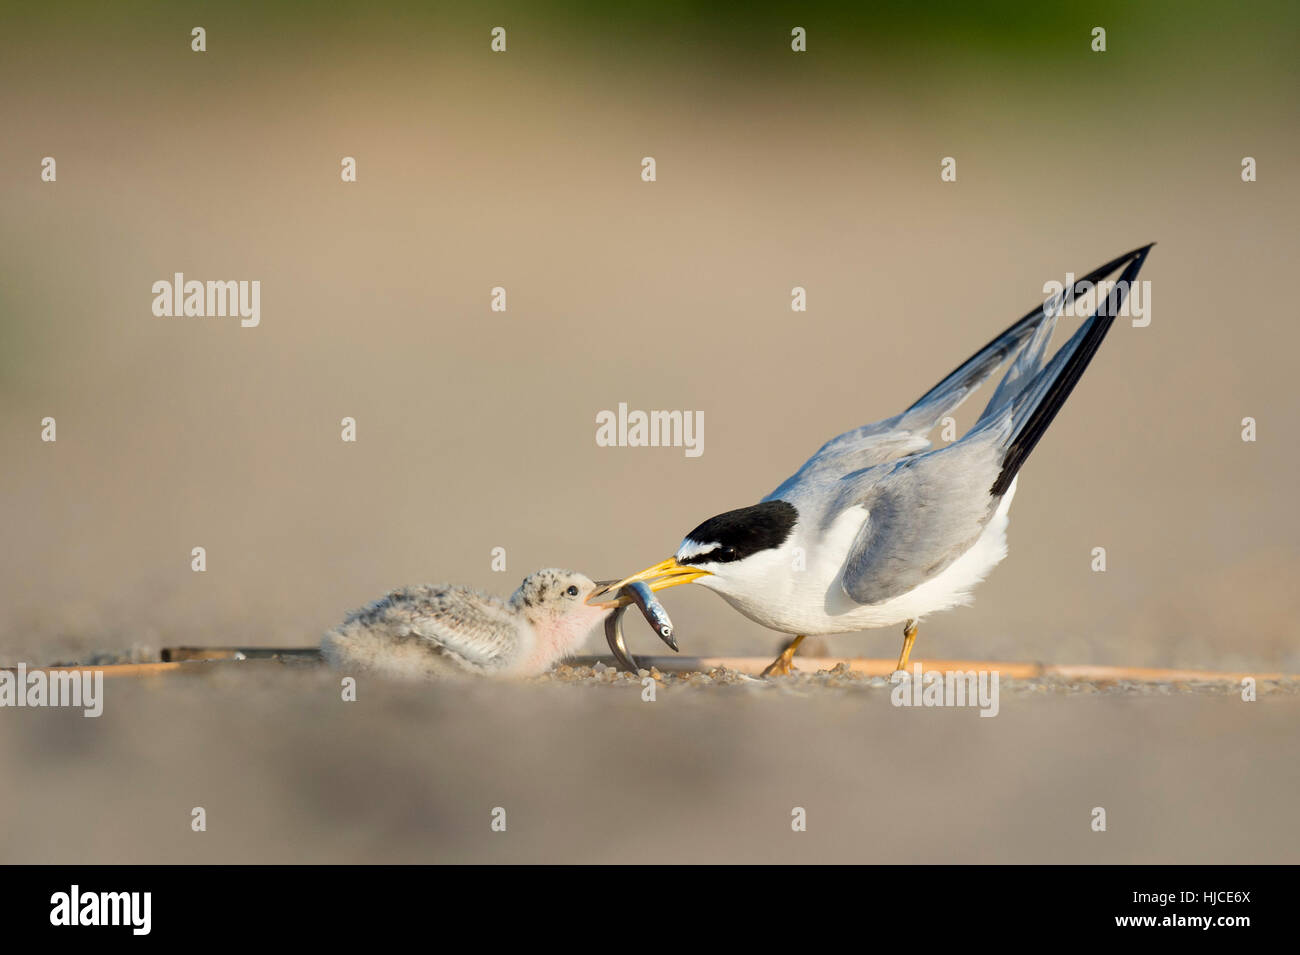 An adult Least Tern feeds its chick a Sand Eel on the beach in the early morning sunlight. - Stock Image